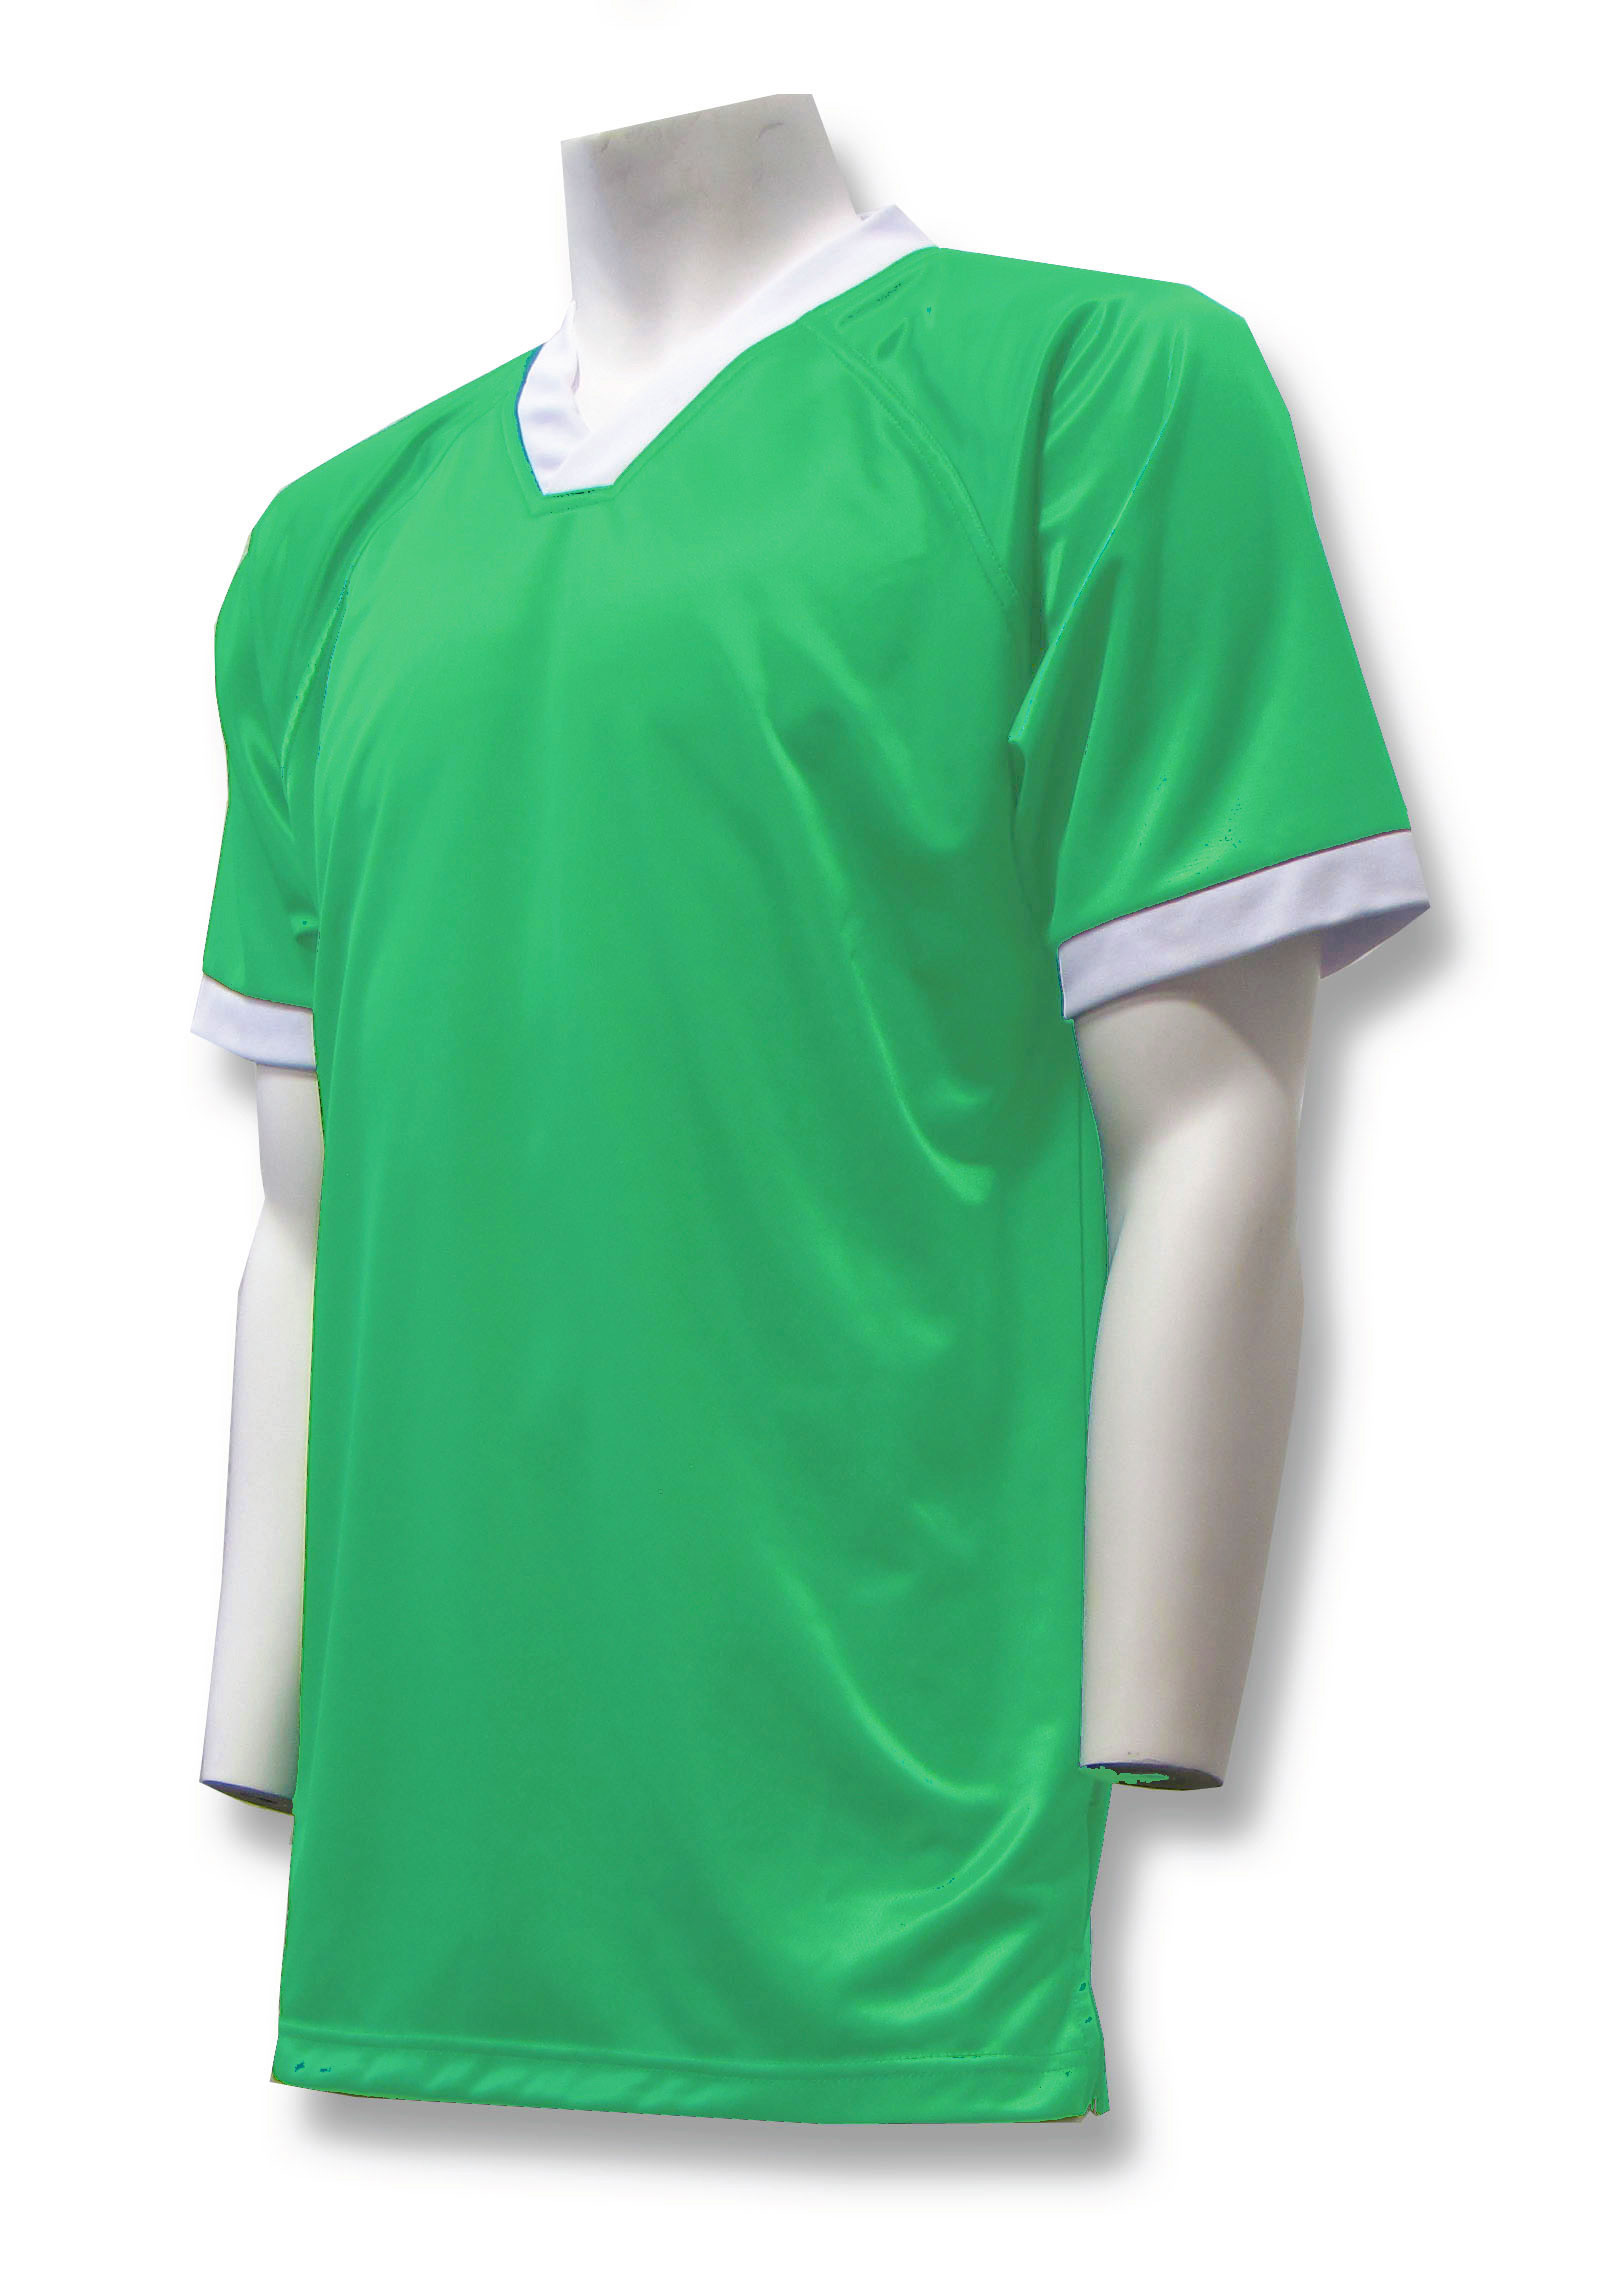 Pioneer soccer jersey in kelly by Code Four Athletics